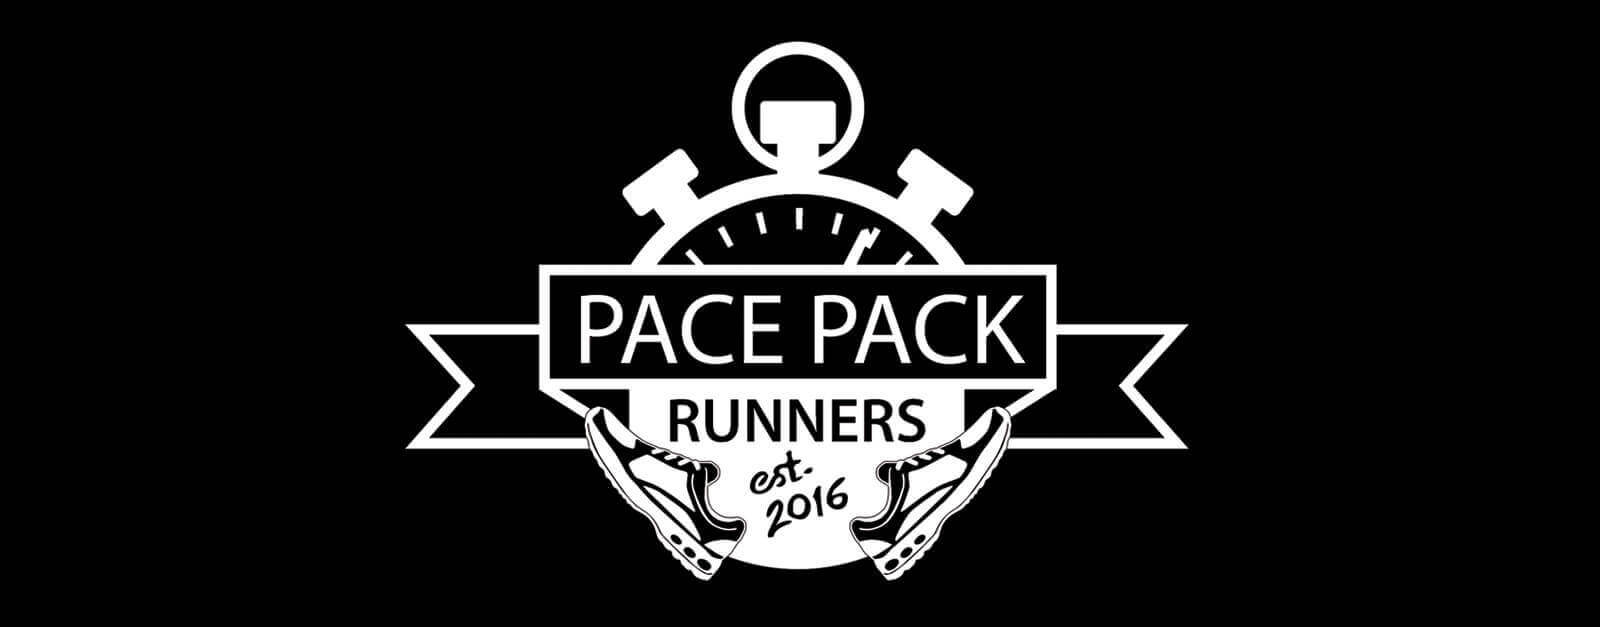 pace-pack-runners-banner-kommabei